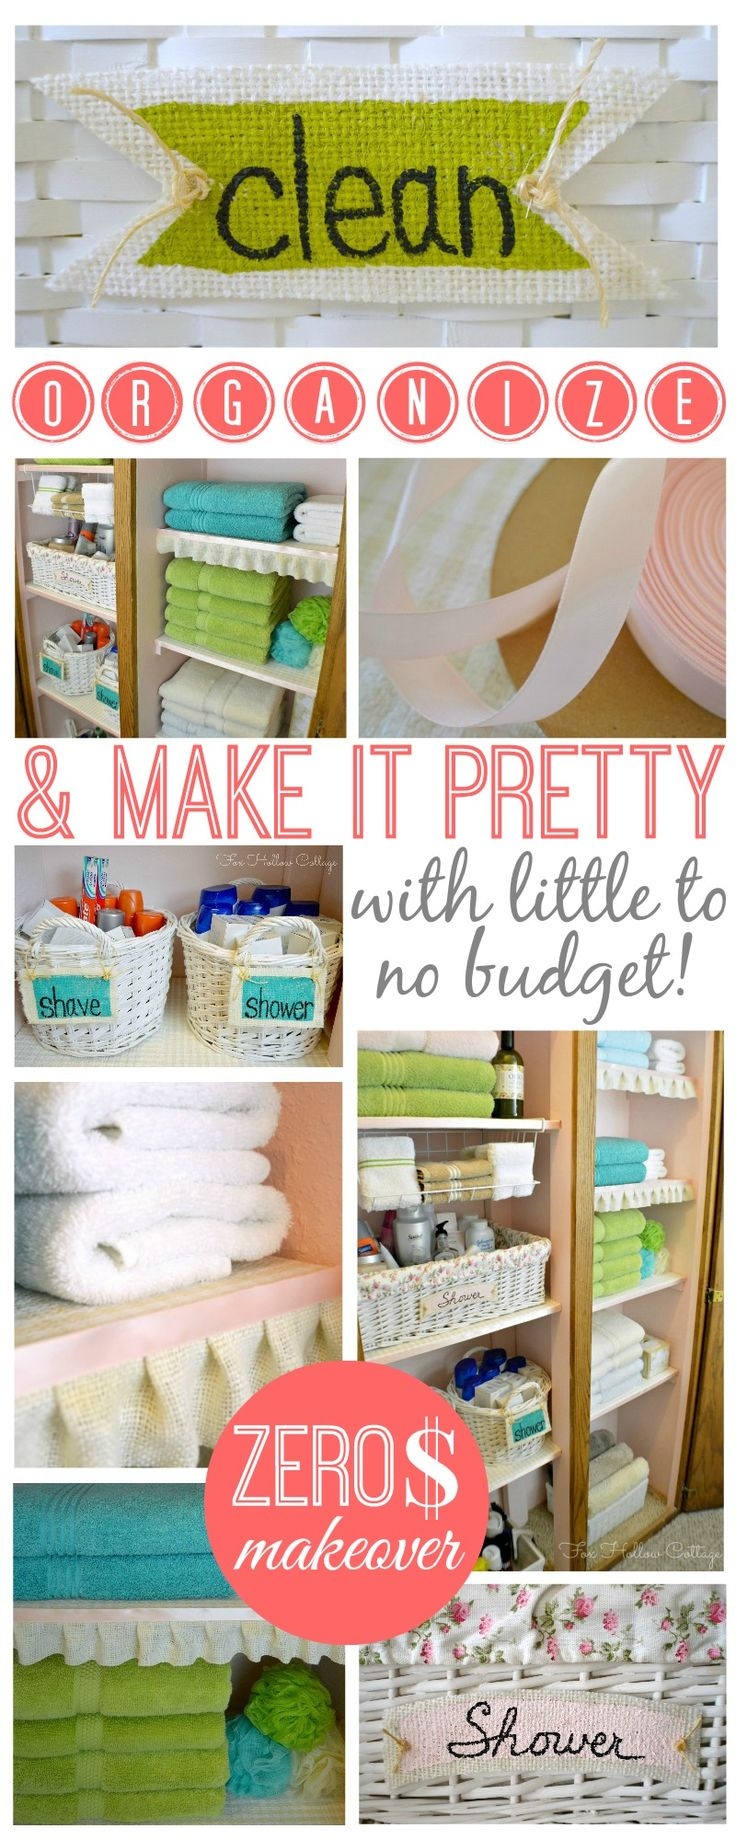 The best images about wire shelf liner ideas on pinterest